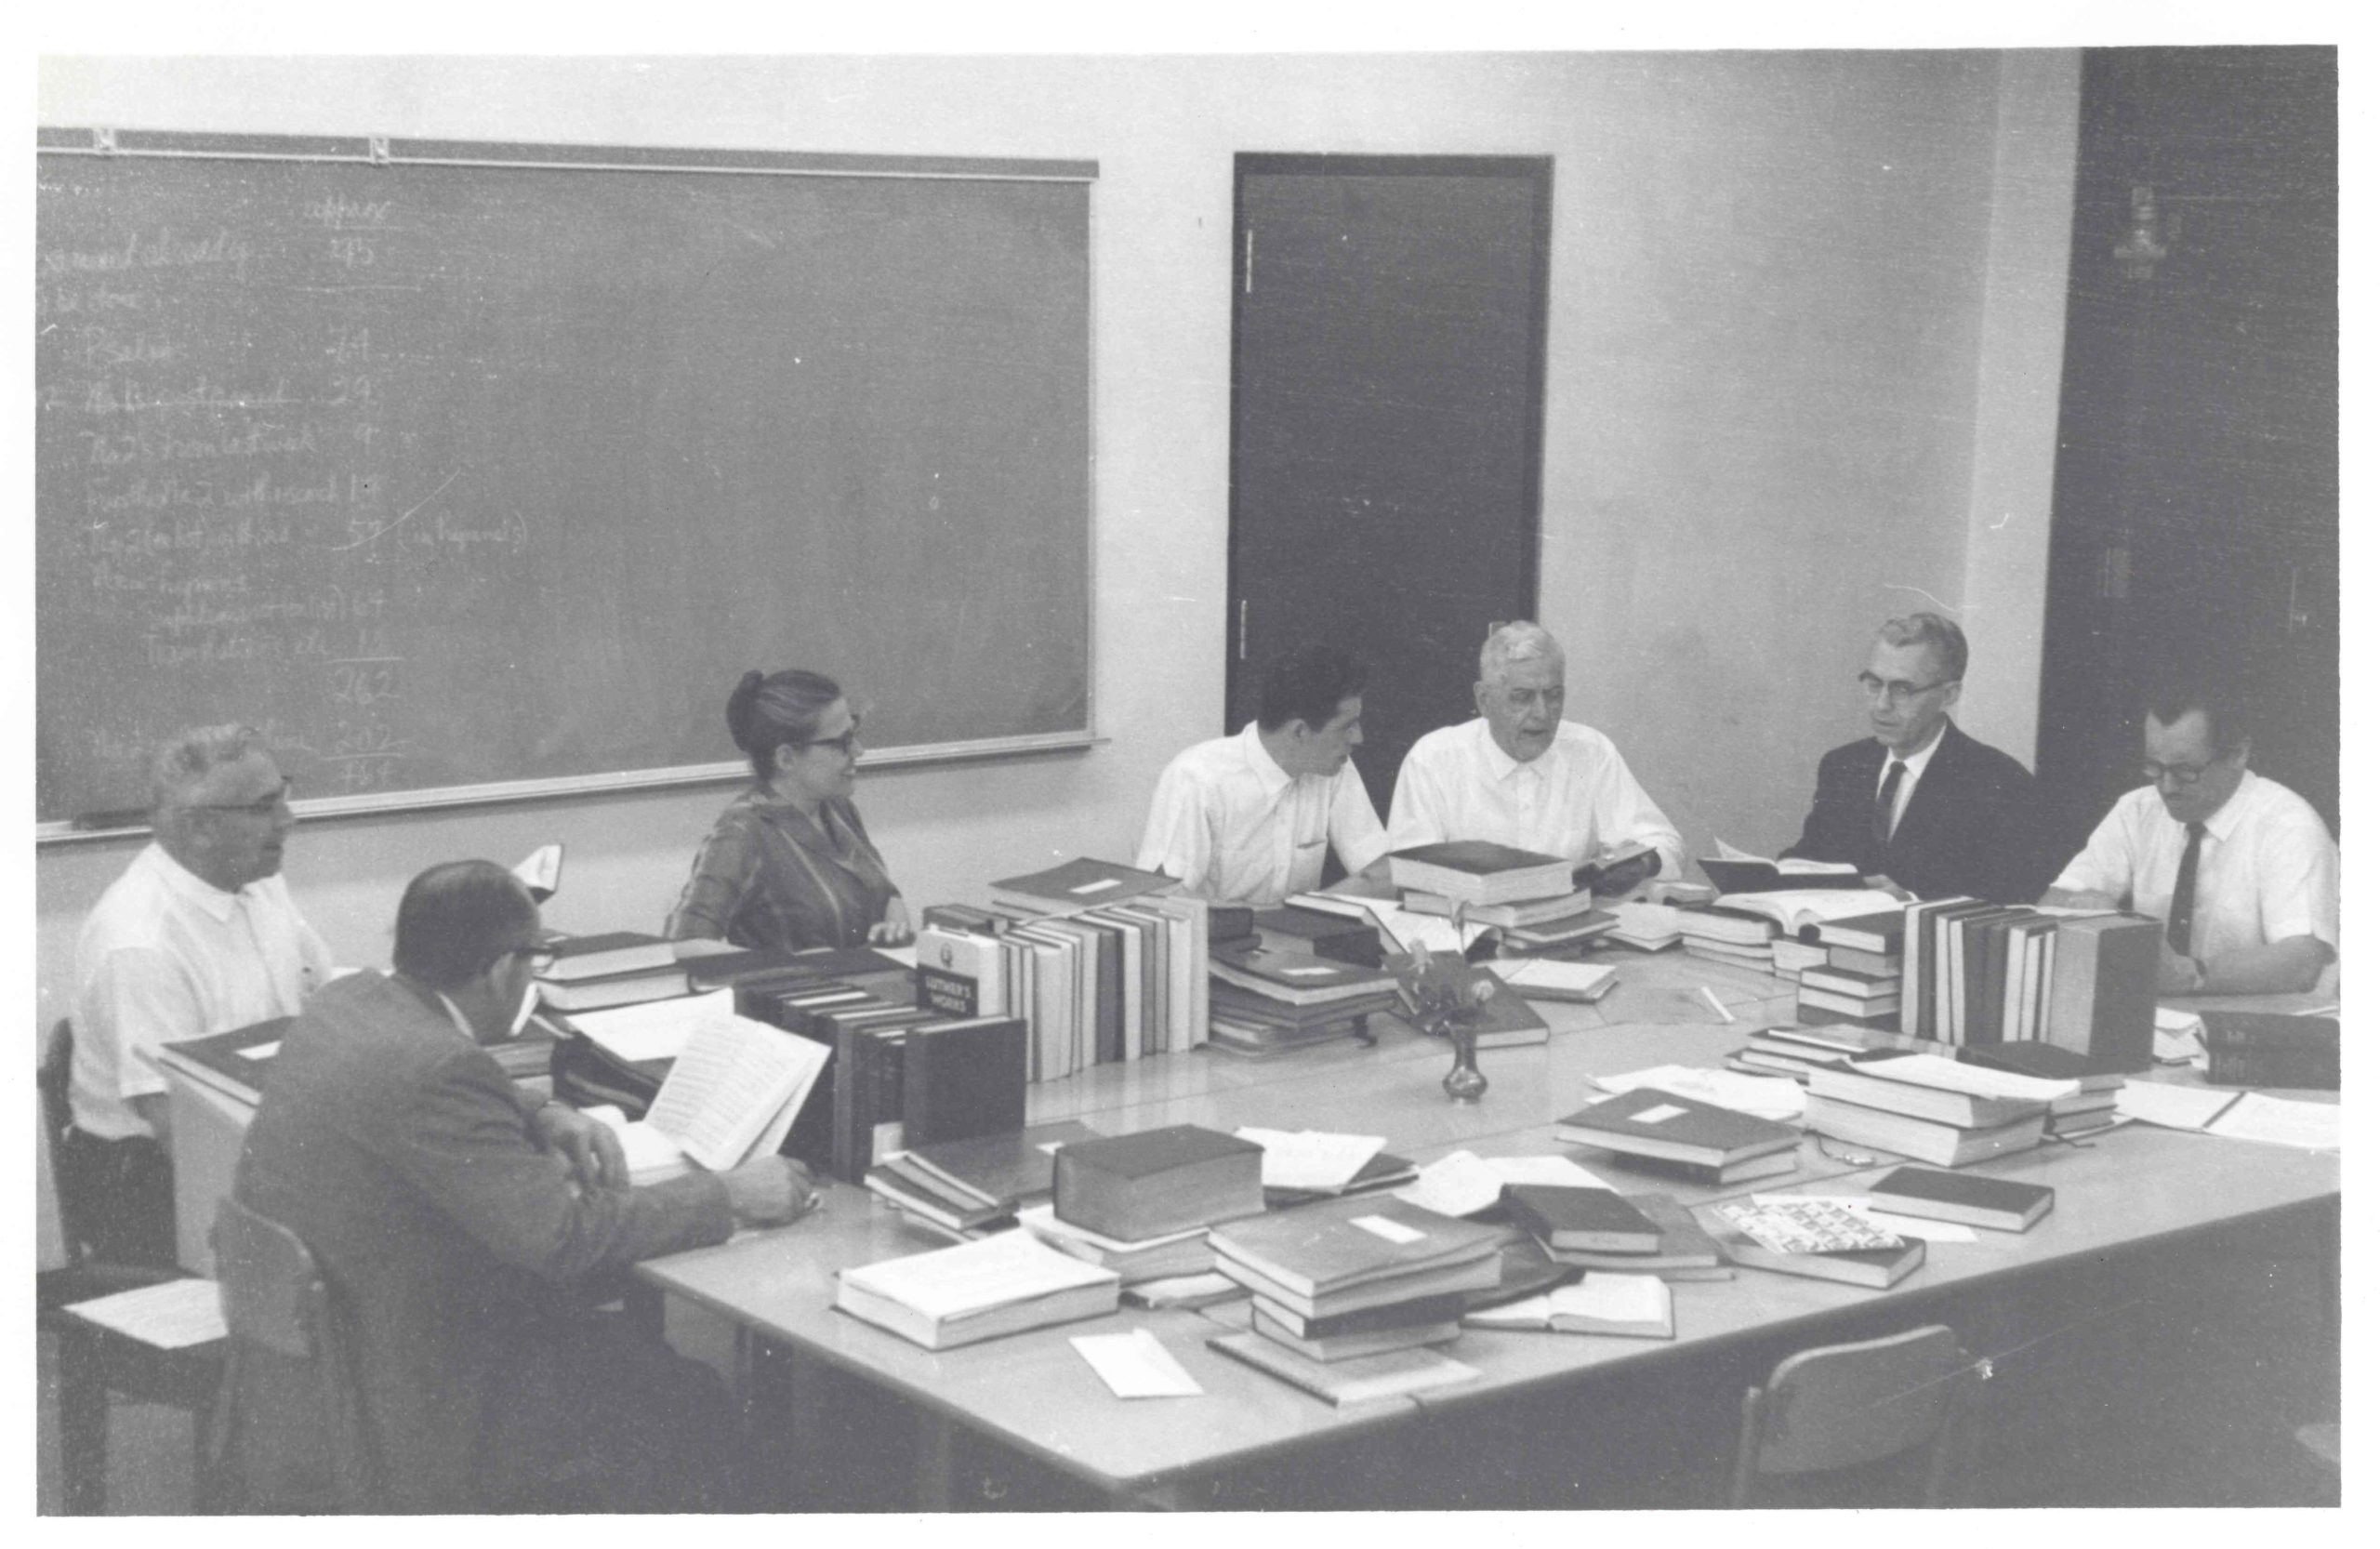 A meeting of the Joint Worship and Hymnal Committee. This committee produced the 1969 Mennonite Hymnal, with Mary Oyer acting as Executive Secretary. Starting from bottom left, and moving clockwise around table: Ed Stoltzfus, Paul Erb, Mary Oyer, John Ruth, Chester Lehman, Marvin Dirks, and Walter Klaassen.